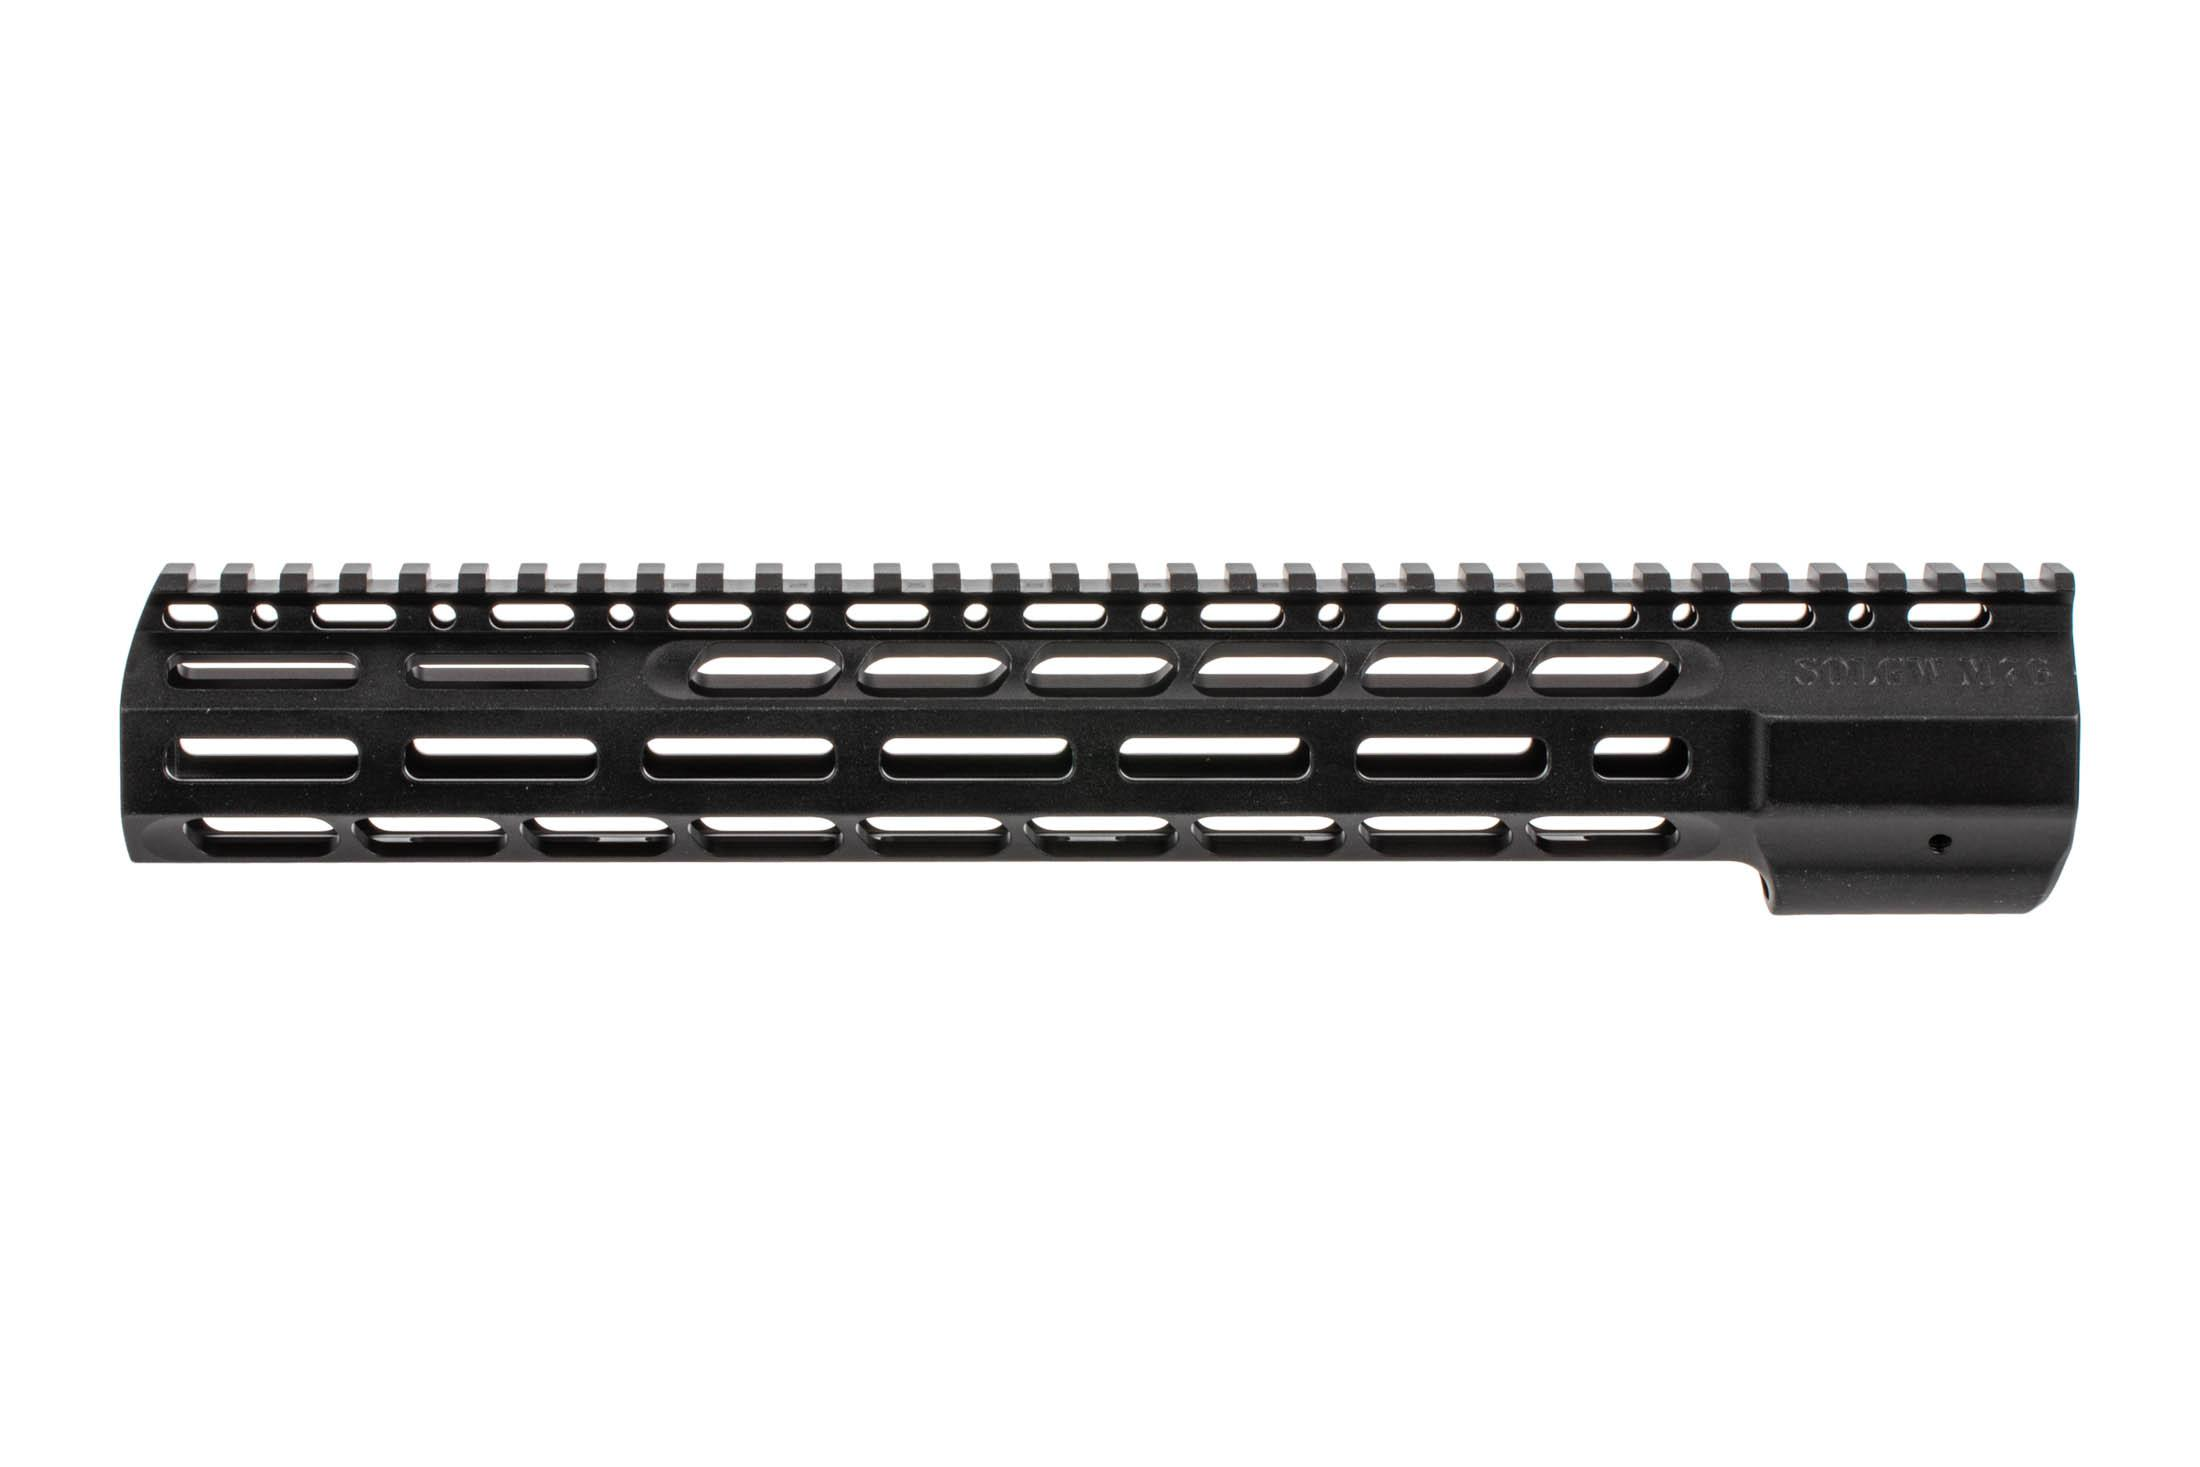 The Sons of Liberty Gun Works M76 Handguard features a black hardcoat anodized finish